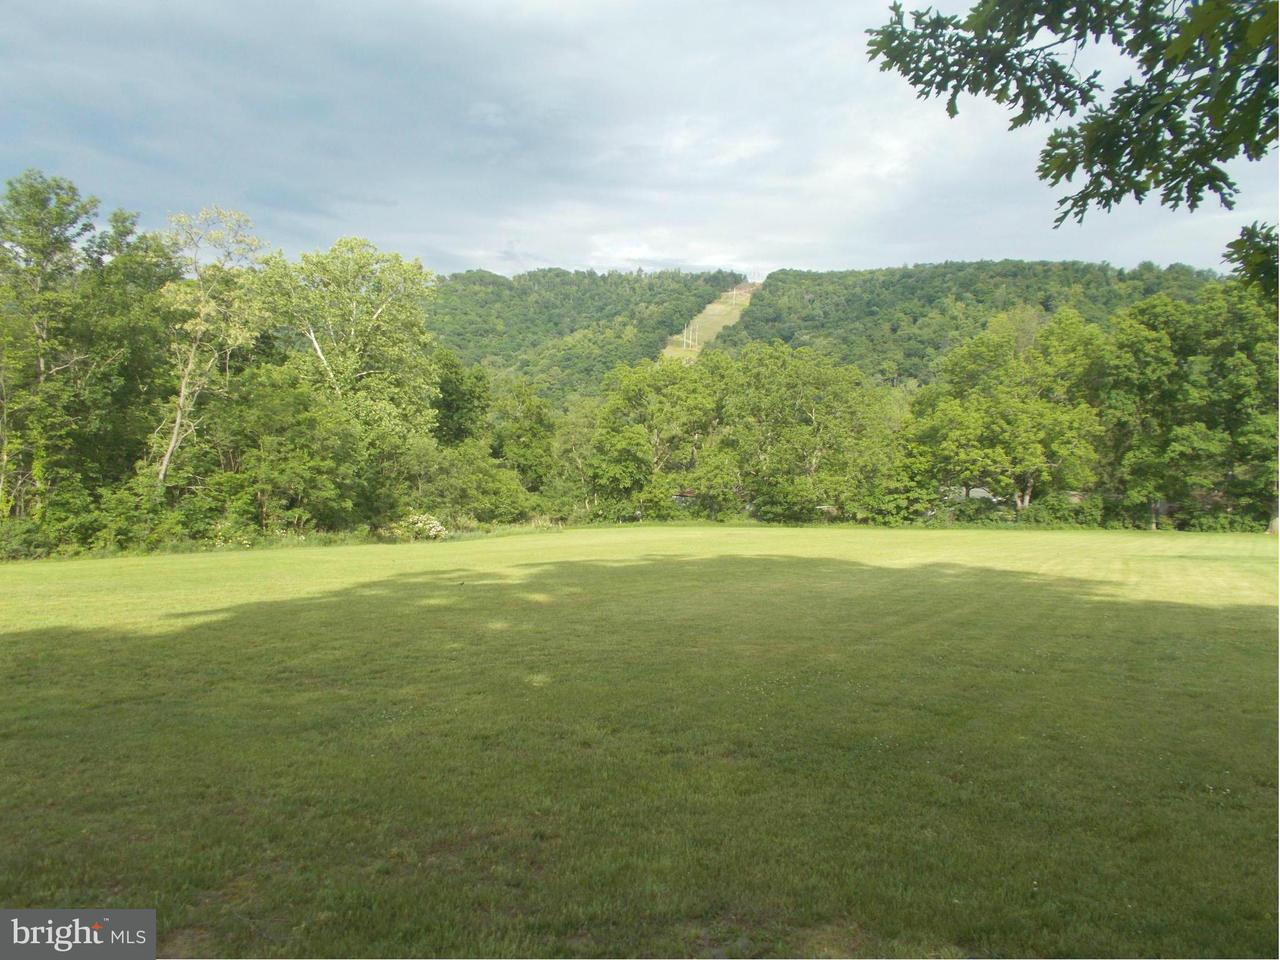 Land for Sale at Tangle Wood Loop New Creek, West Virginia 26743 United States